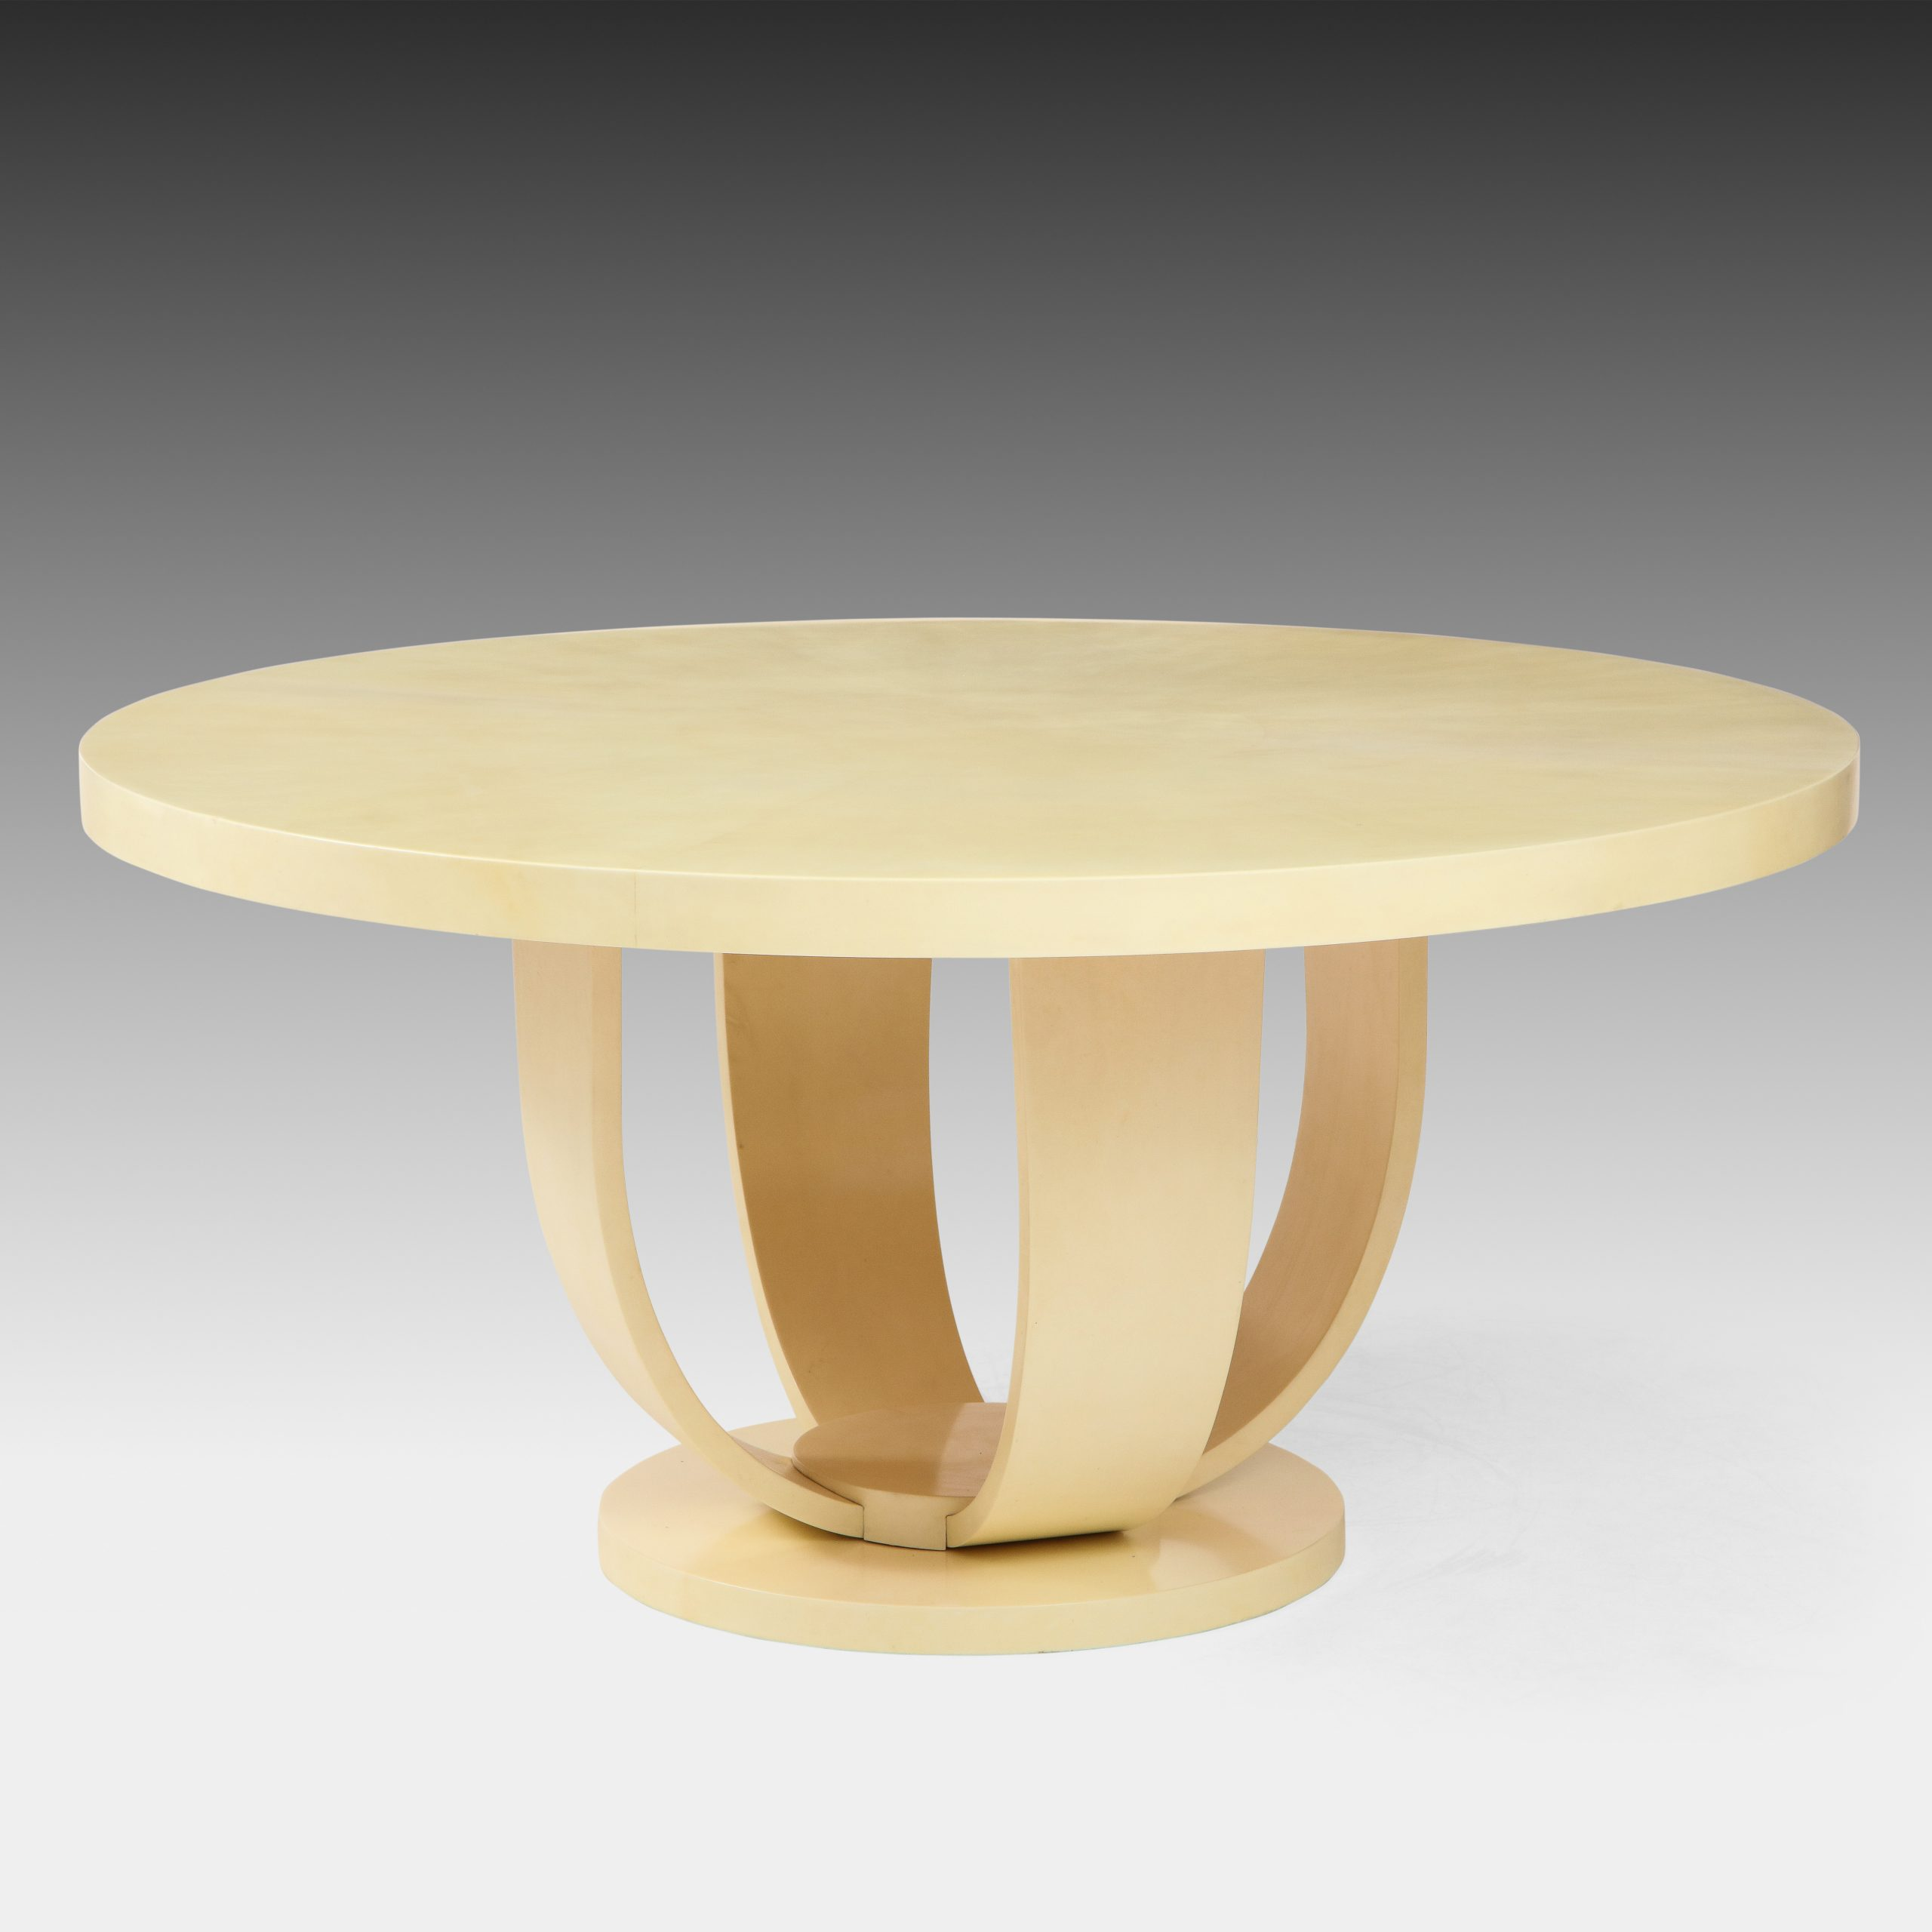 Ivory Lacquered Goatskin Center or Dining Table by Aldo Tura   soyun k.